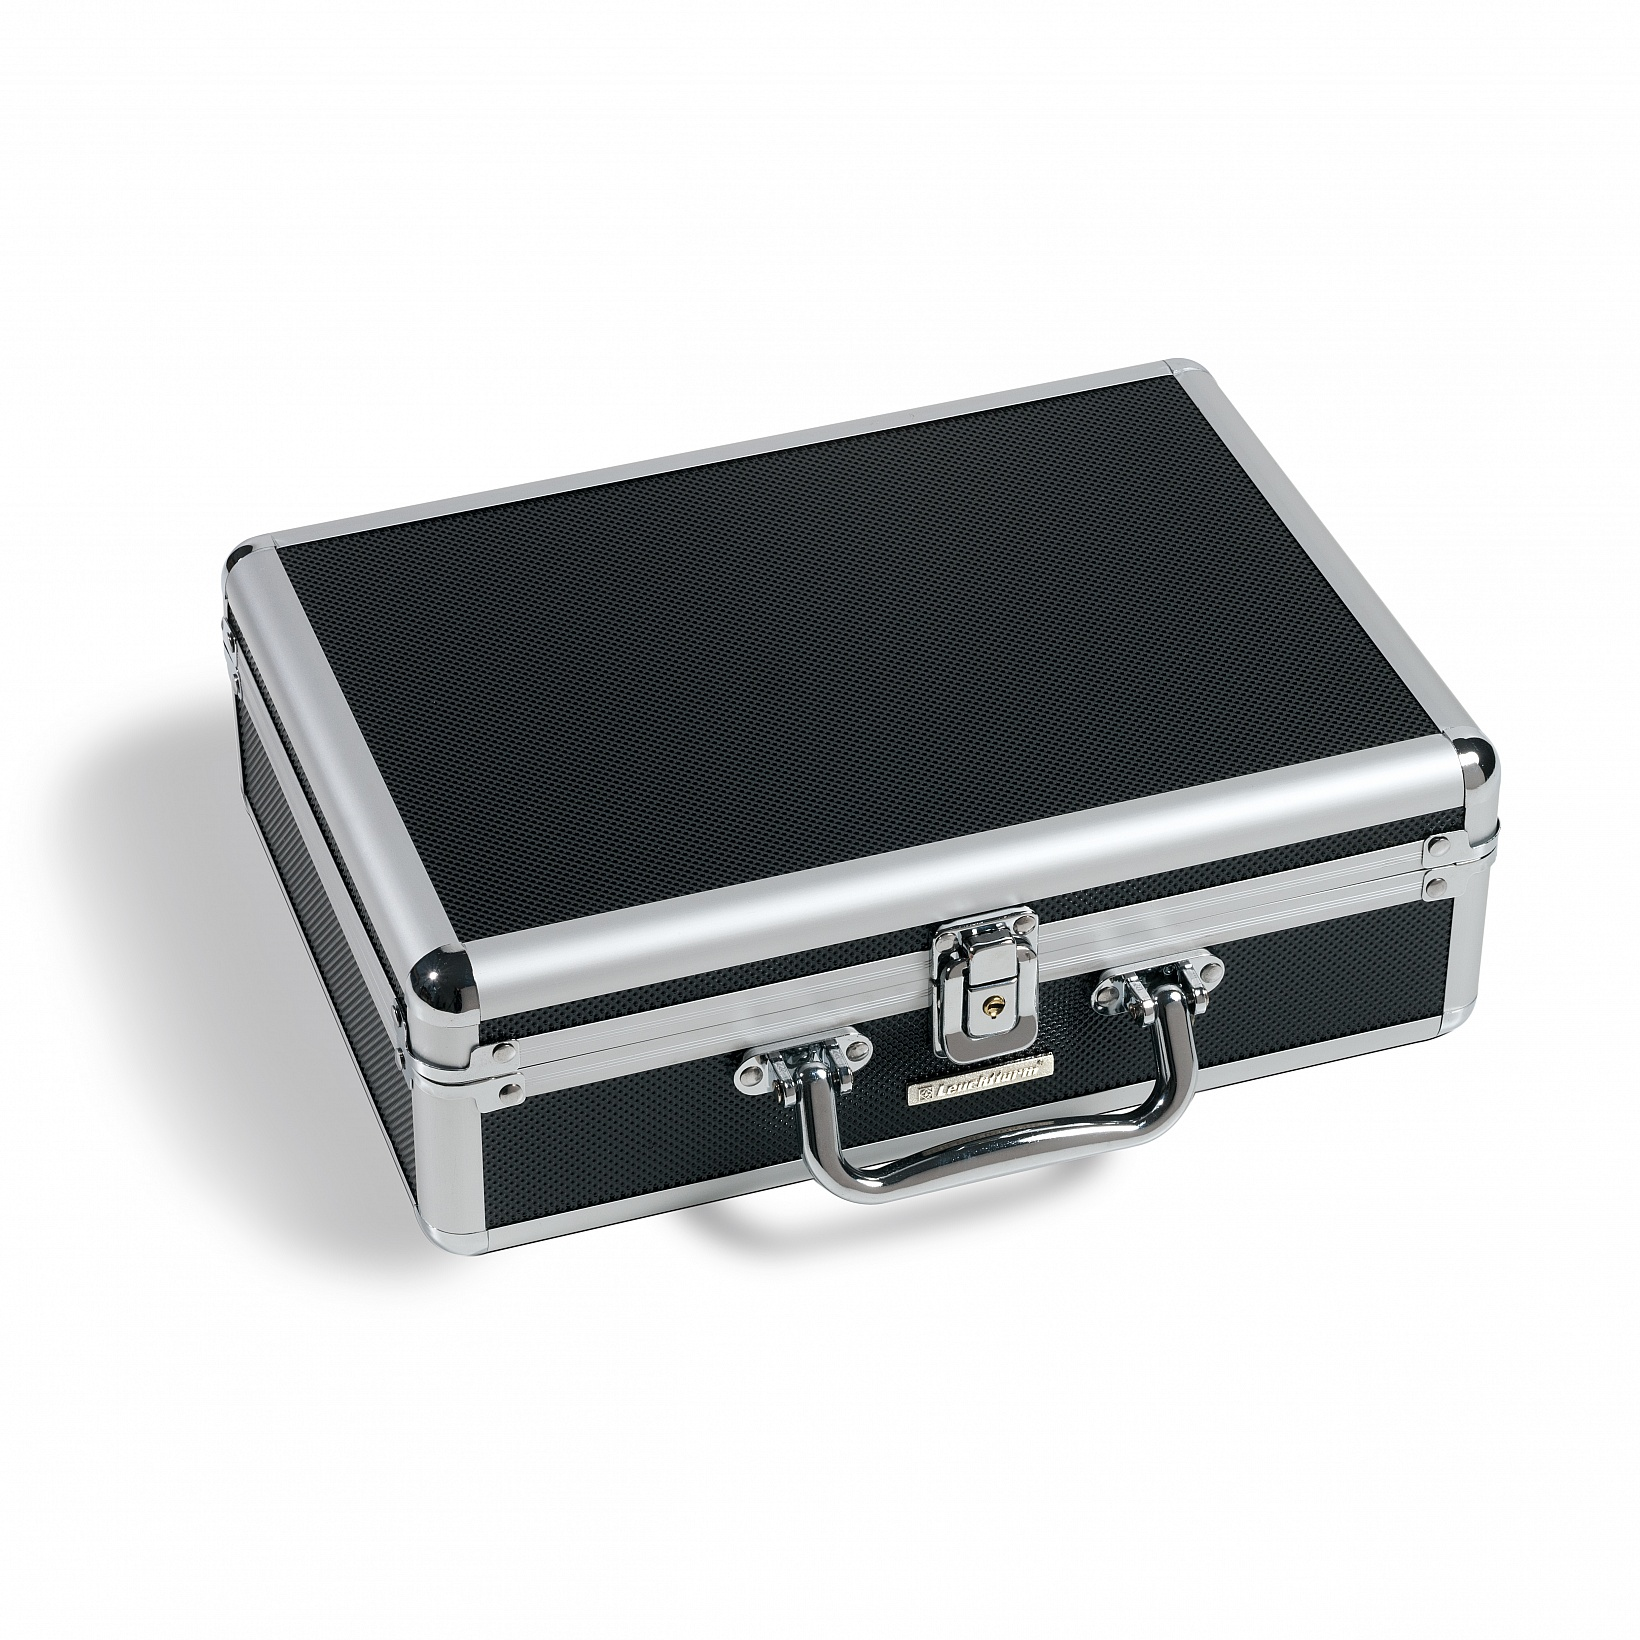 coin-case-cargo-s6-for-120-10-20-euro-coins-in-capsules-black-silver-1